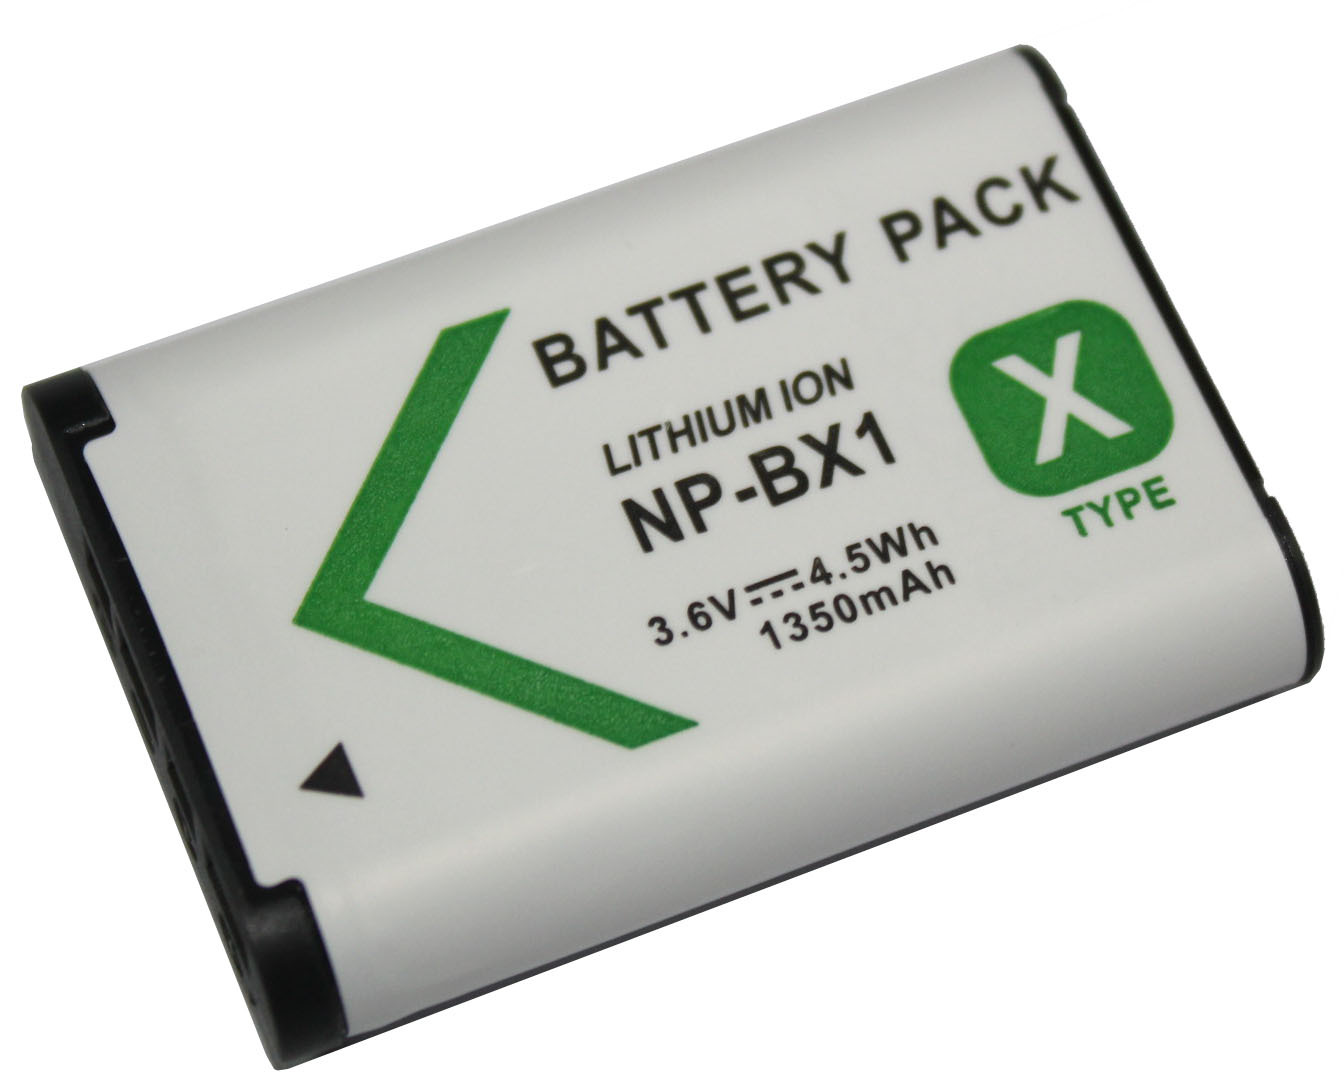 GTF 3.6V NP-BX1 NP BX1 Camera Battery Pack Lithium ion Batteria for SONY DSC RX1 RX100 M3 M2 RX1R GWP88 WX500 HX300 WX300 HX400GTF 3.6V NP-BX1 NP BX1 Camera Battery Pack Lithium ion Batteria for SONY DSC RX1 RX100 M3 M2 RX1R GWP88 WX500 HX300 WX300 HX400